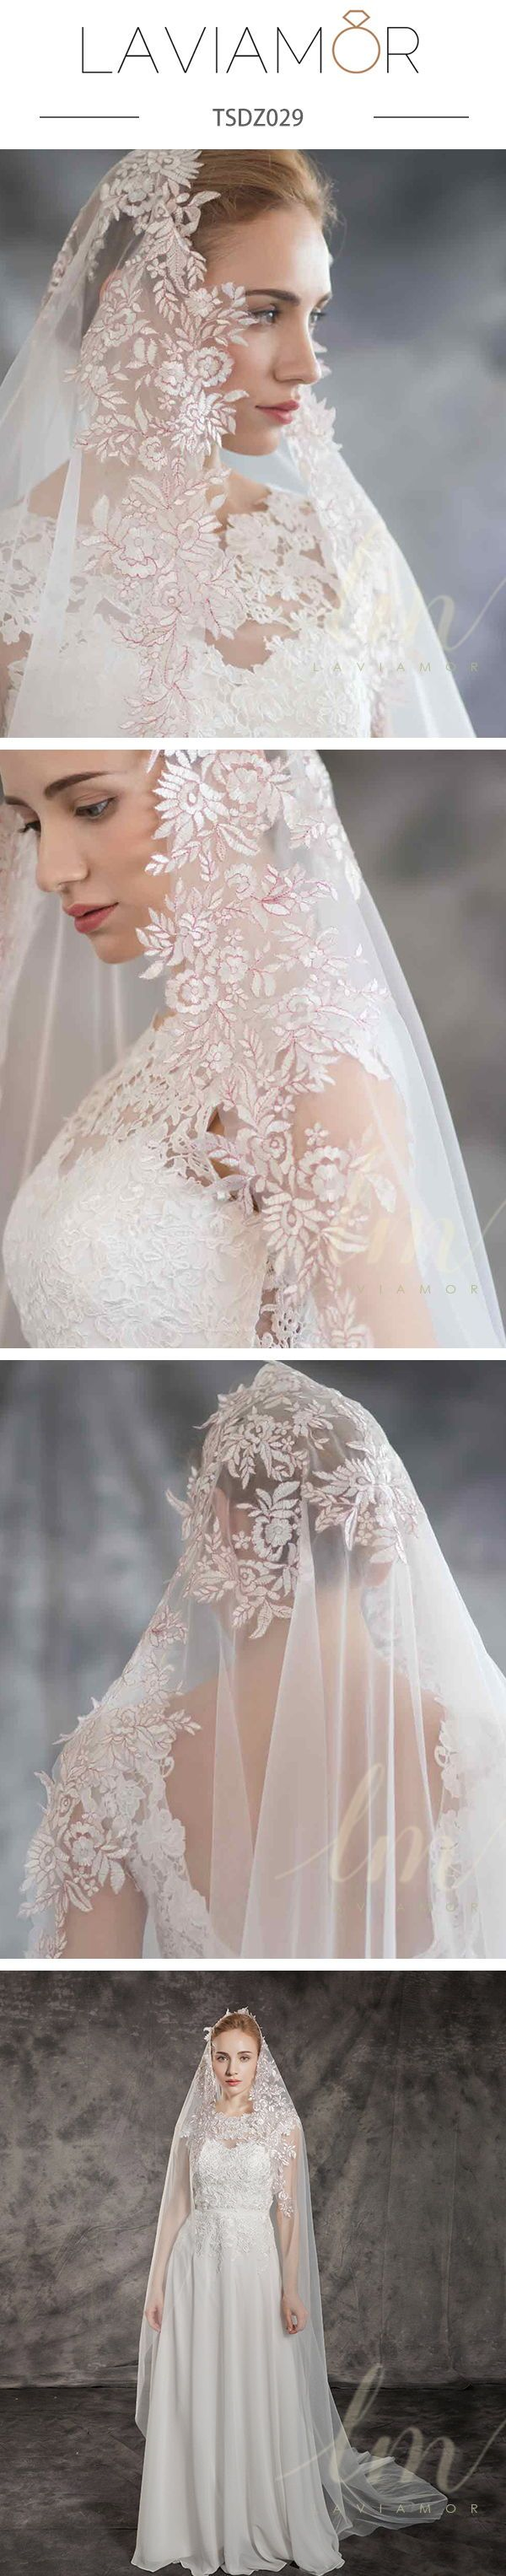 Wedding accessories and wedding hairstyles idea,This gorgeous lace veil is made with soft tulle. Unique long wedding veil accented with incredibly romantic lace appliques.Handmade scalloped lace embellishments#veil #weddingveil#bridalveil #bridalveils #cathedralveil #laceveil #justengaged #bridetobe2019 #weddingseason #weddingideas #weddinginspiration #weddings #brides #bridalparty #weddingtrends #weddingday #laviamor